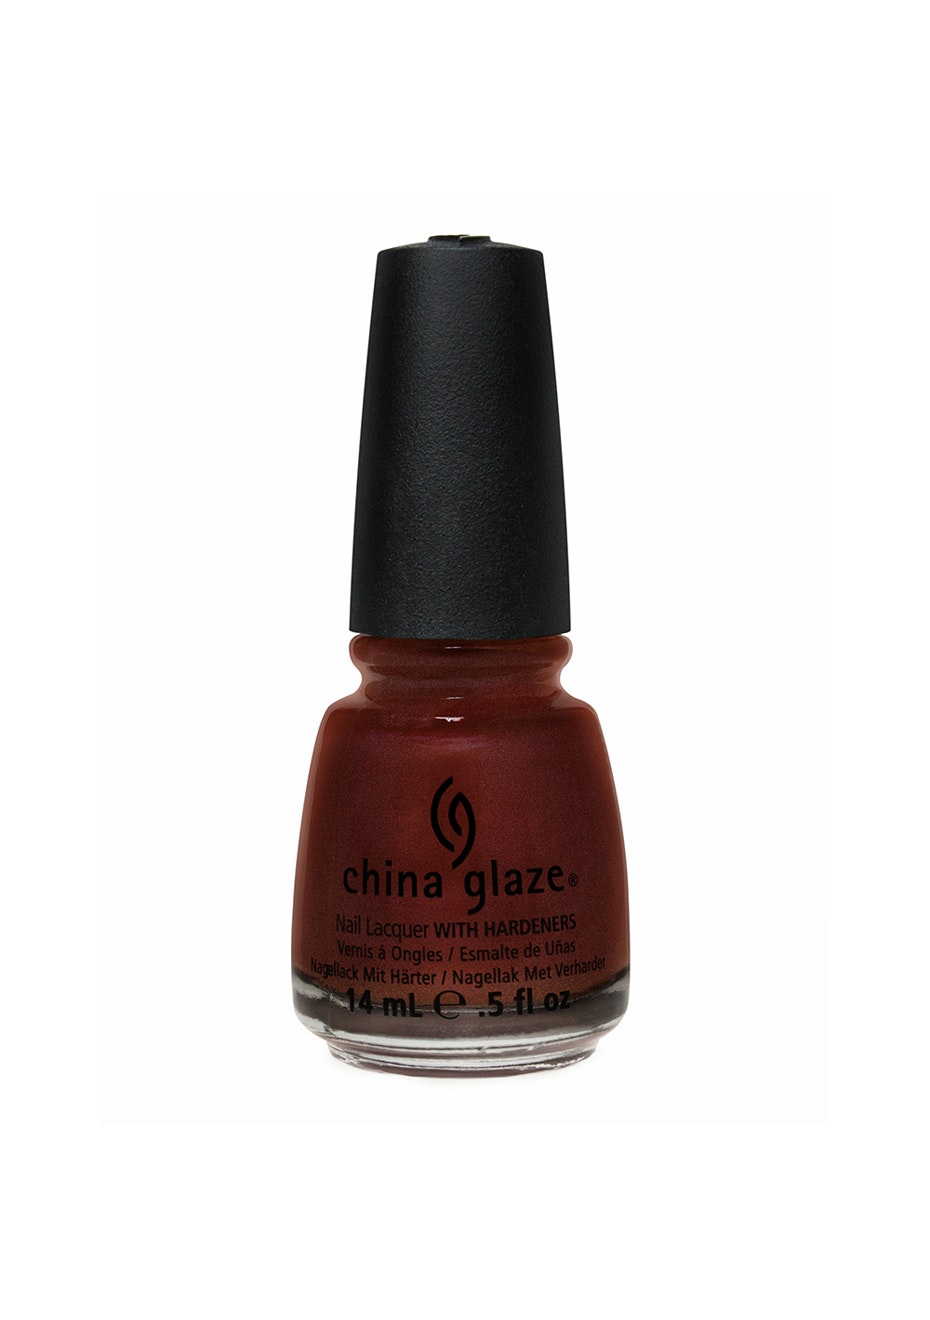 China Glaze #648 UNPLUGGED